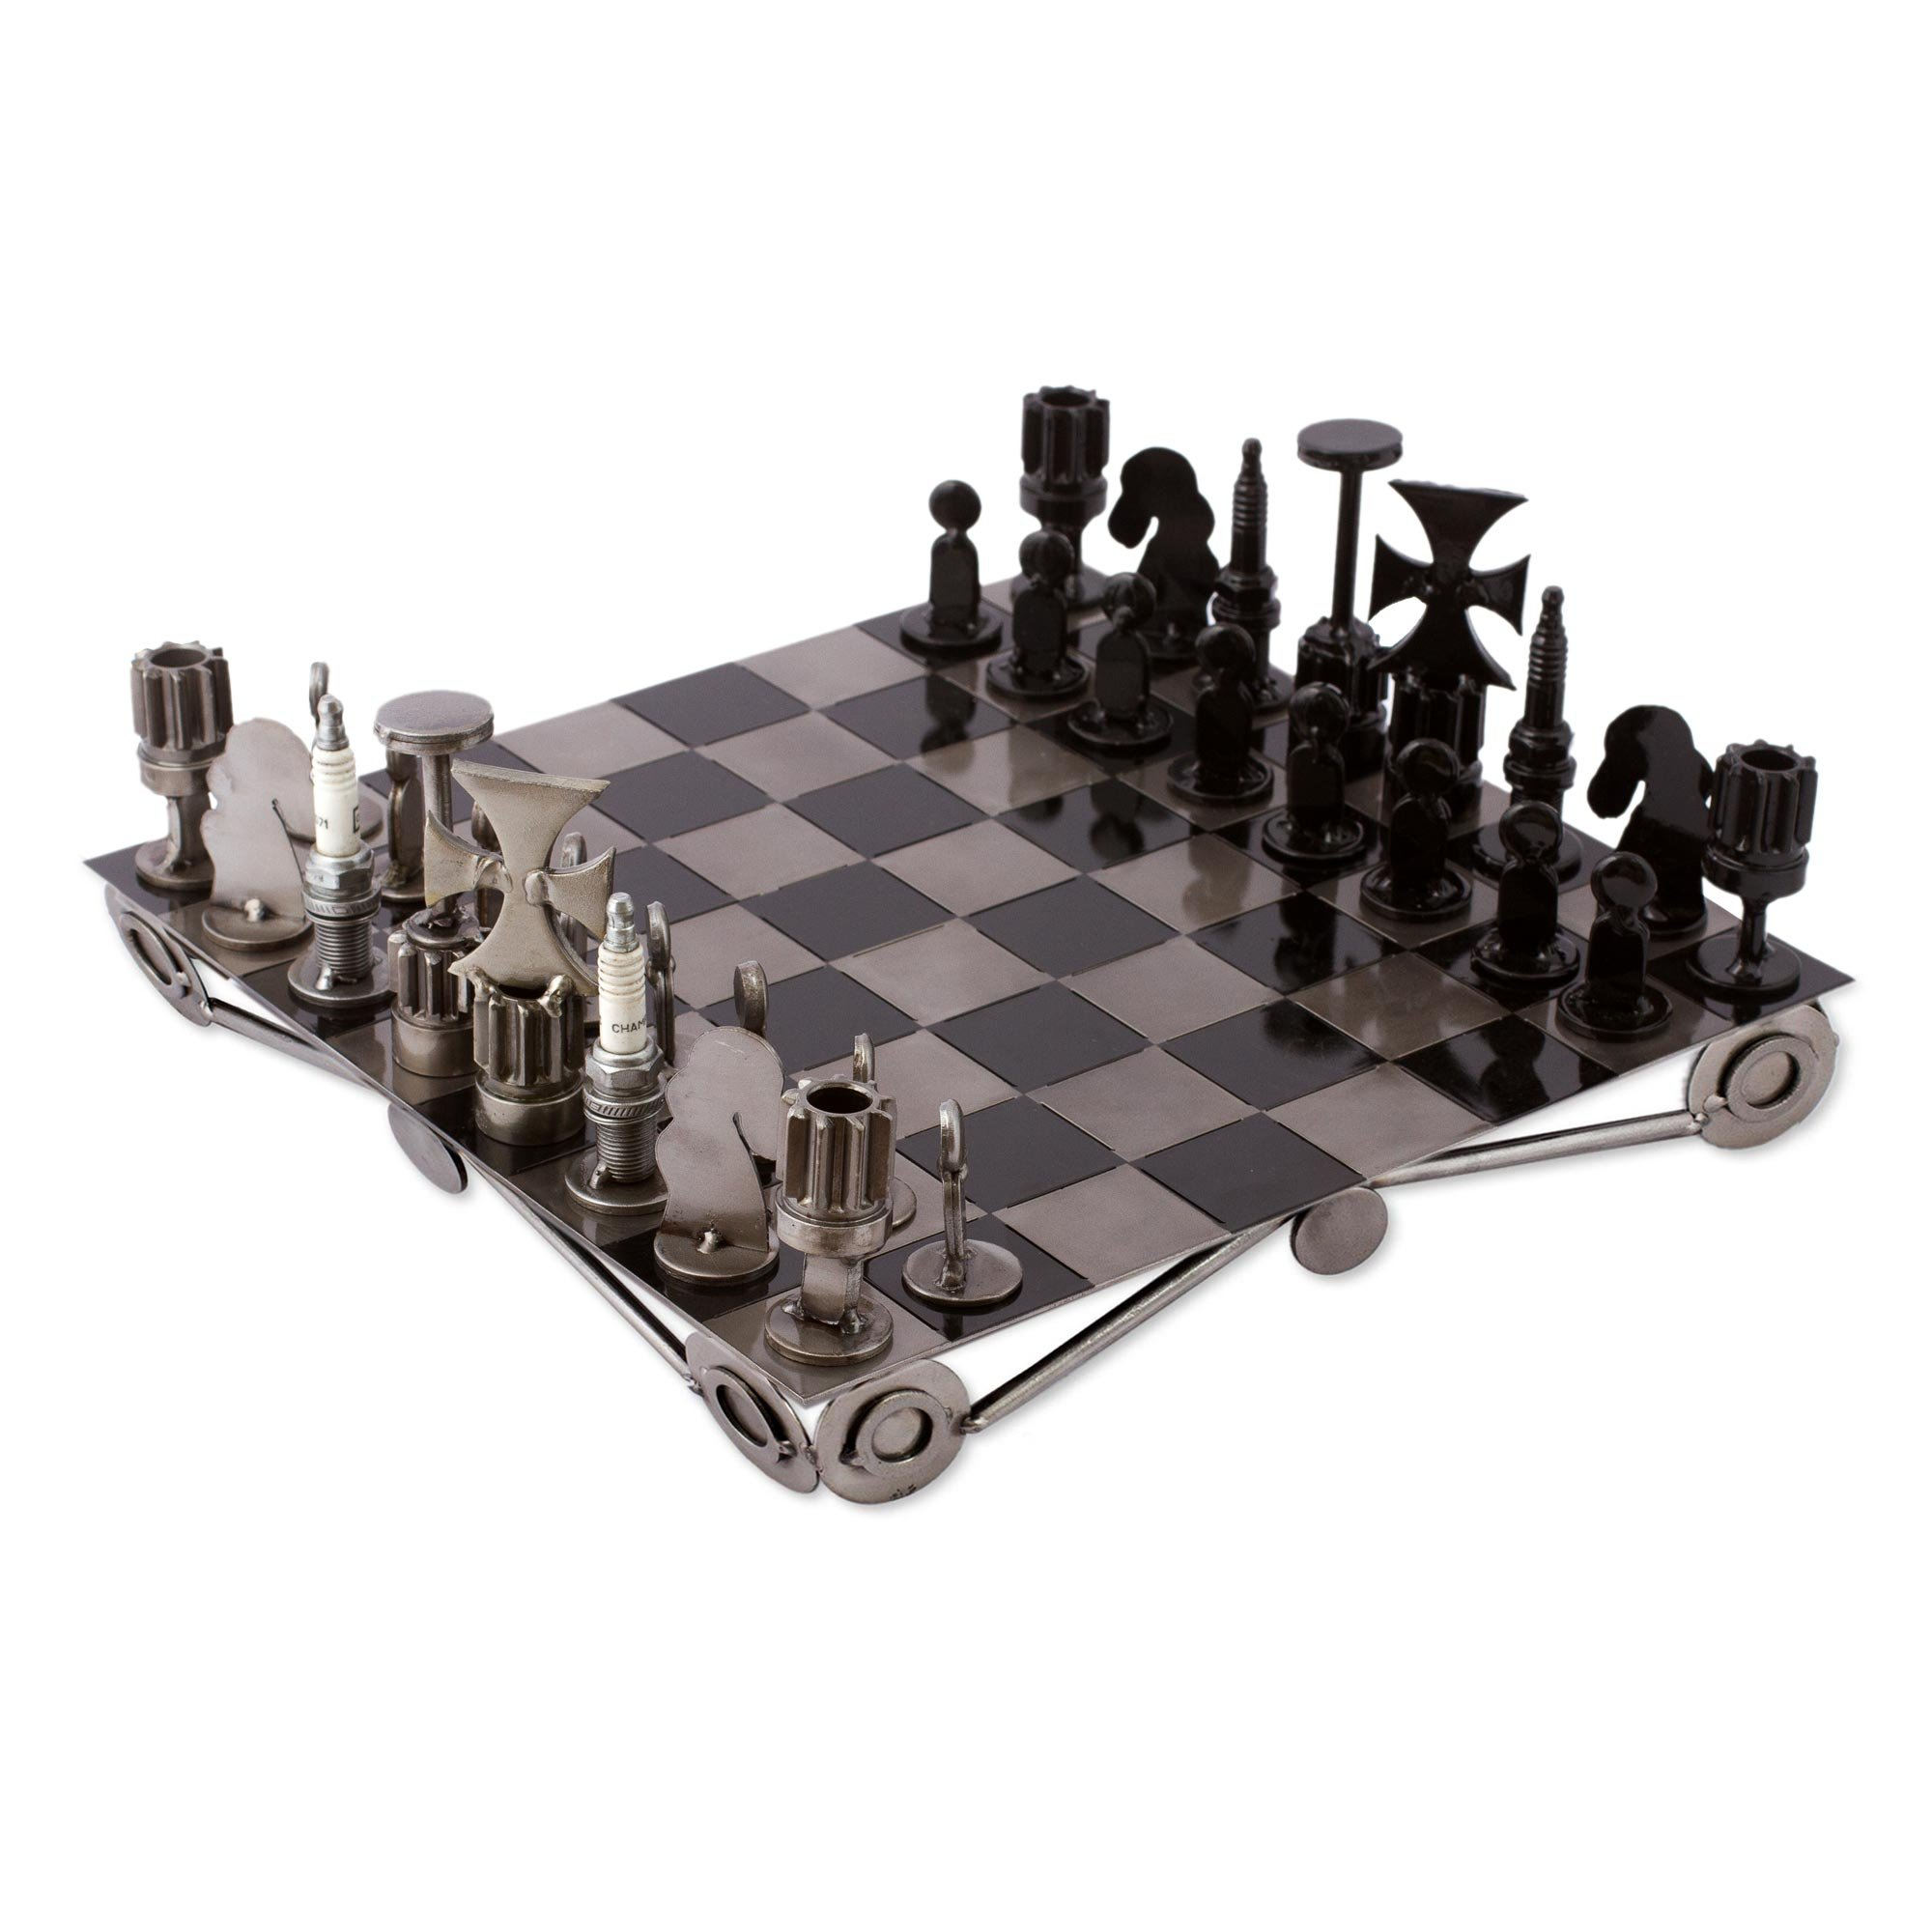 NOVICA Decorative Recycled Metal Handmade Tabletop Chess Set, 'Recycling Challenge'